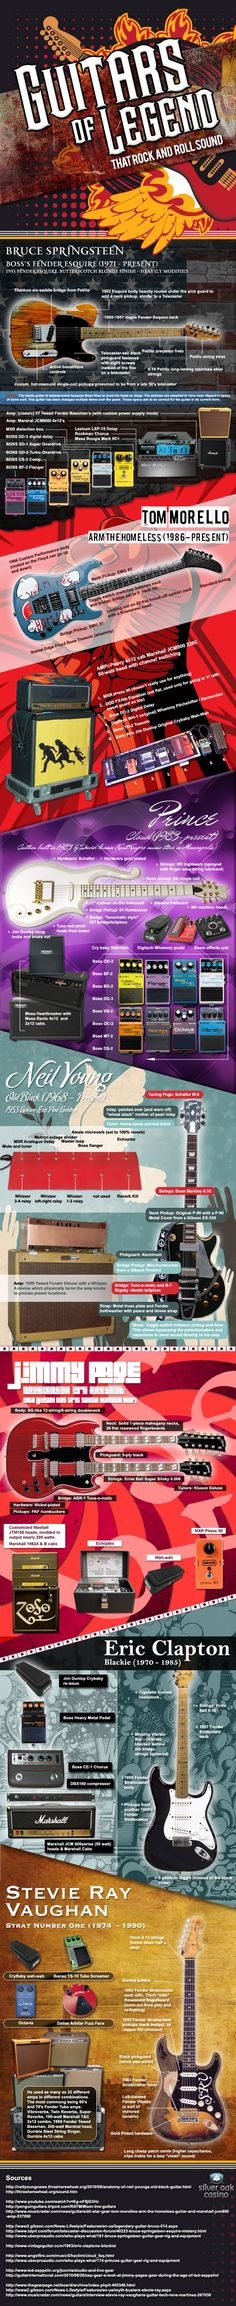 INFOGRAPHIC: GUITARS OF LEGEND – THAT ROCK AND ROLL SOUND